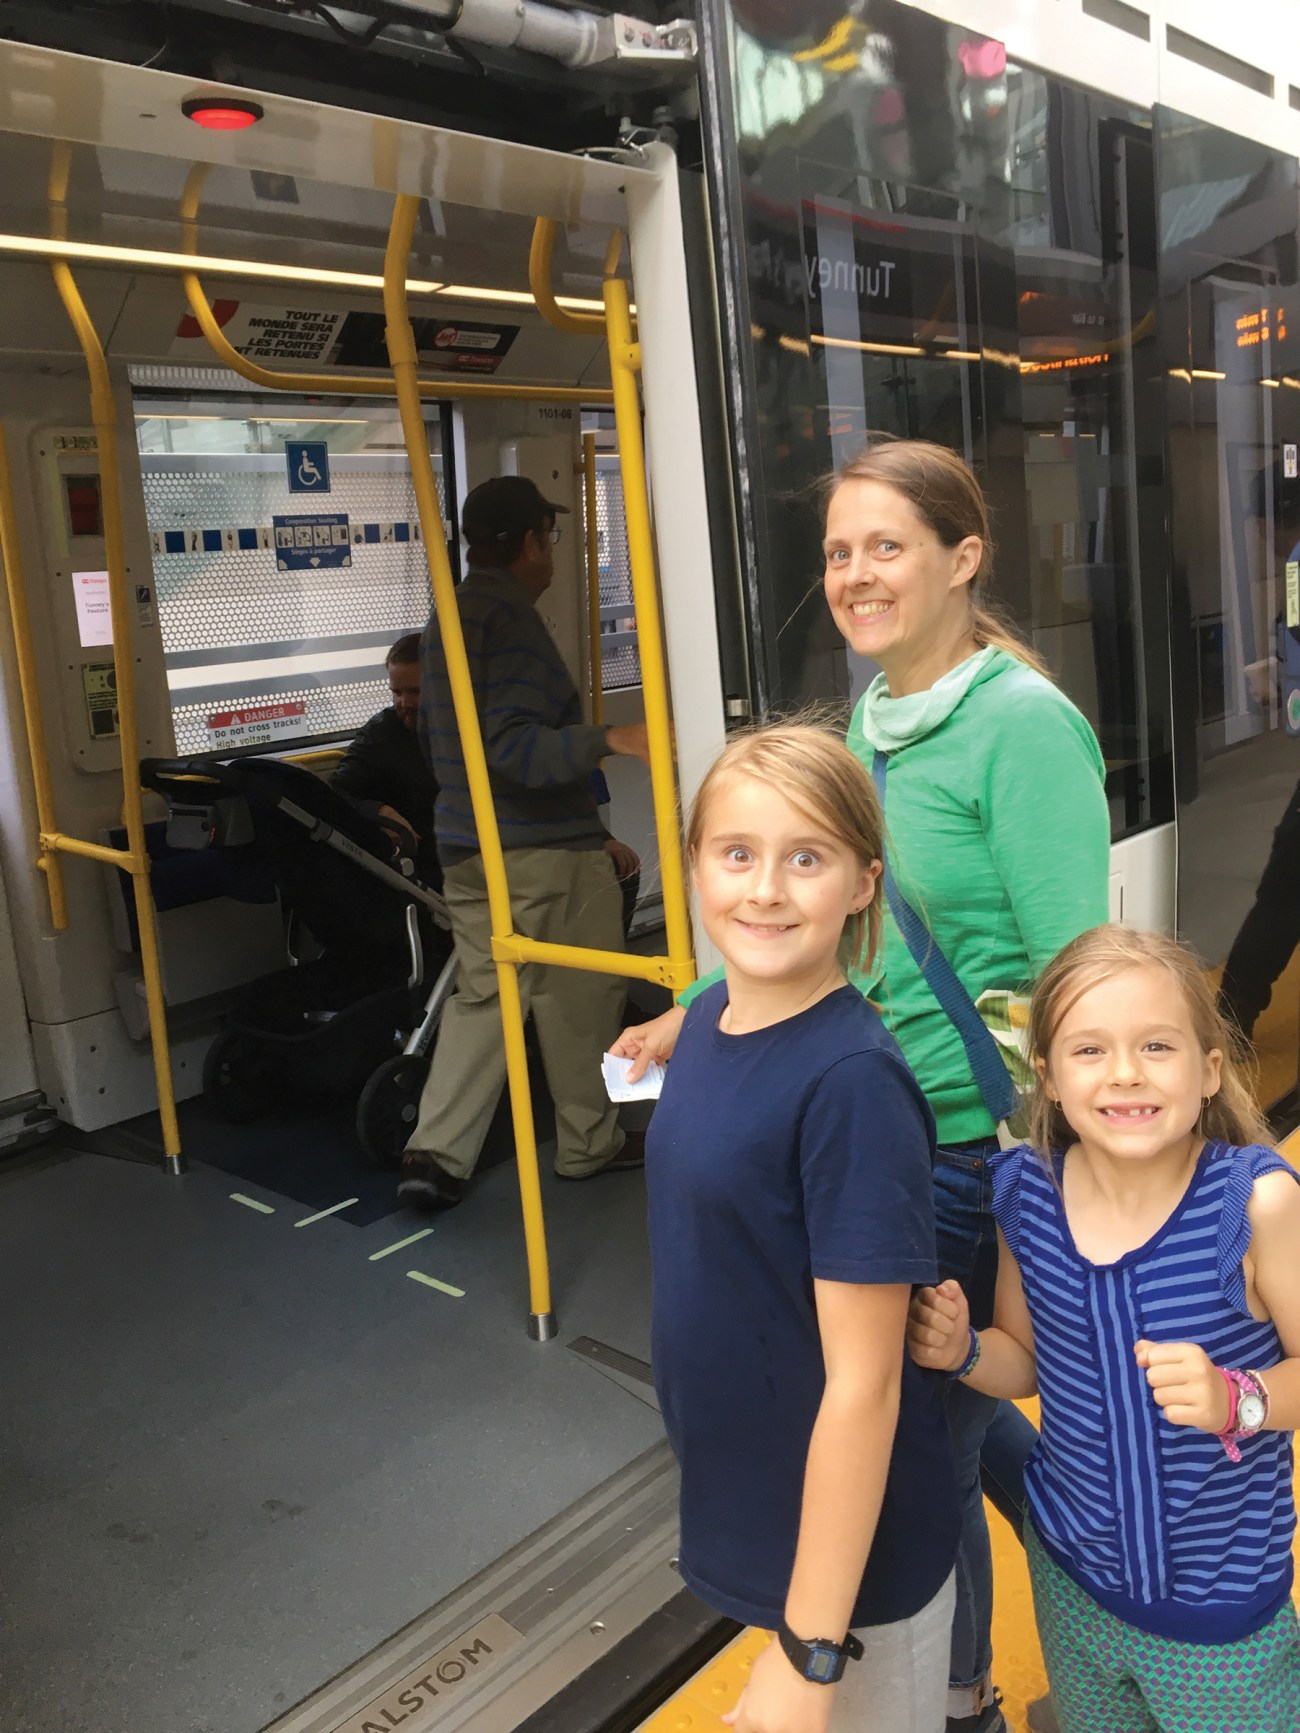 Mom and two kids get ready to board the new Ottawa LRT.